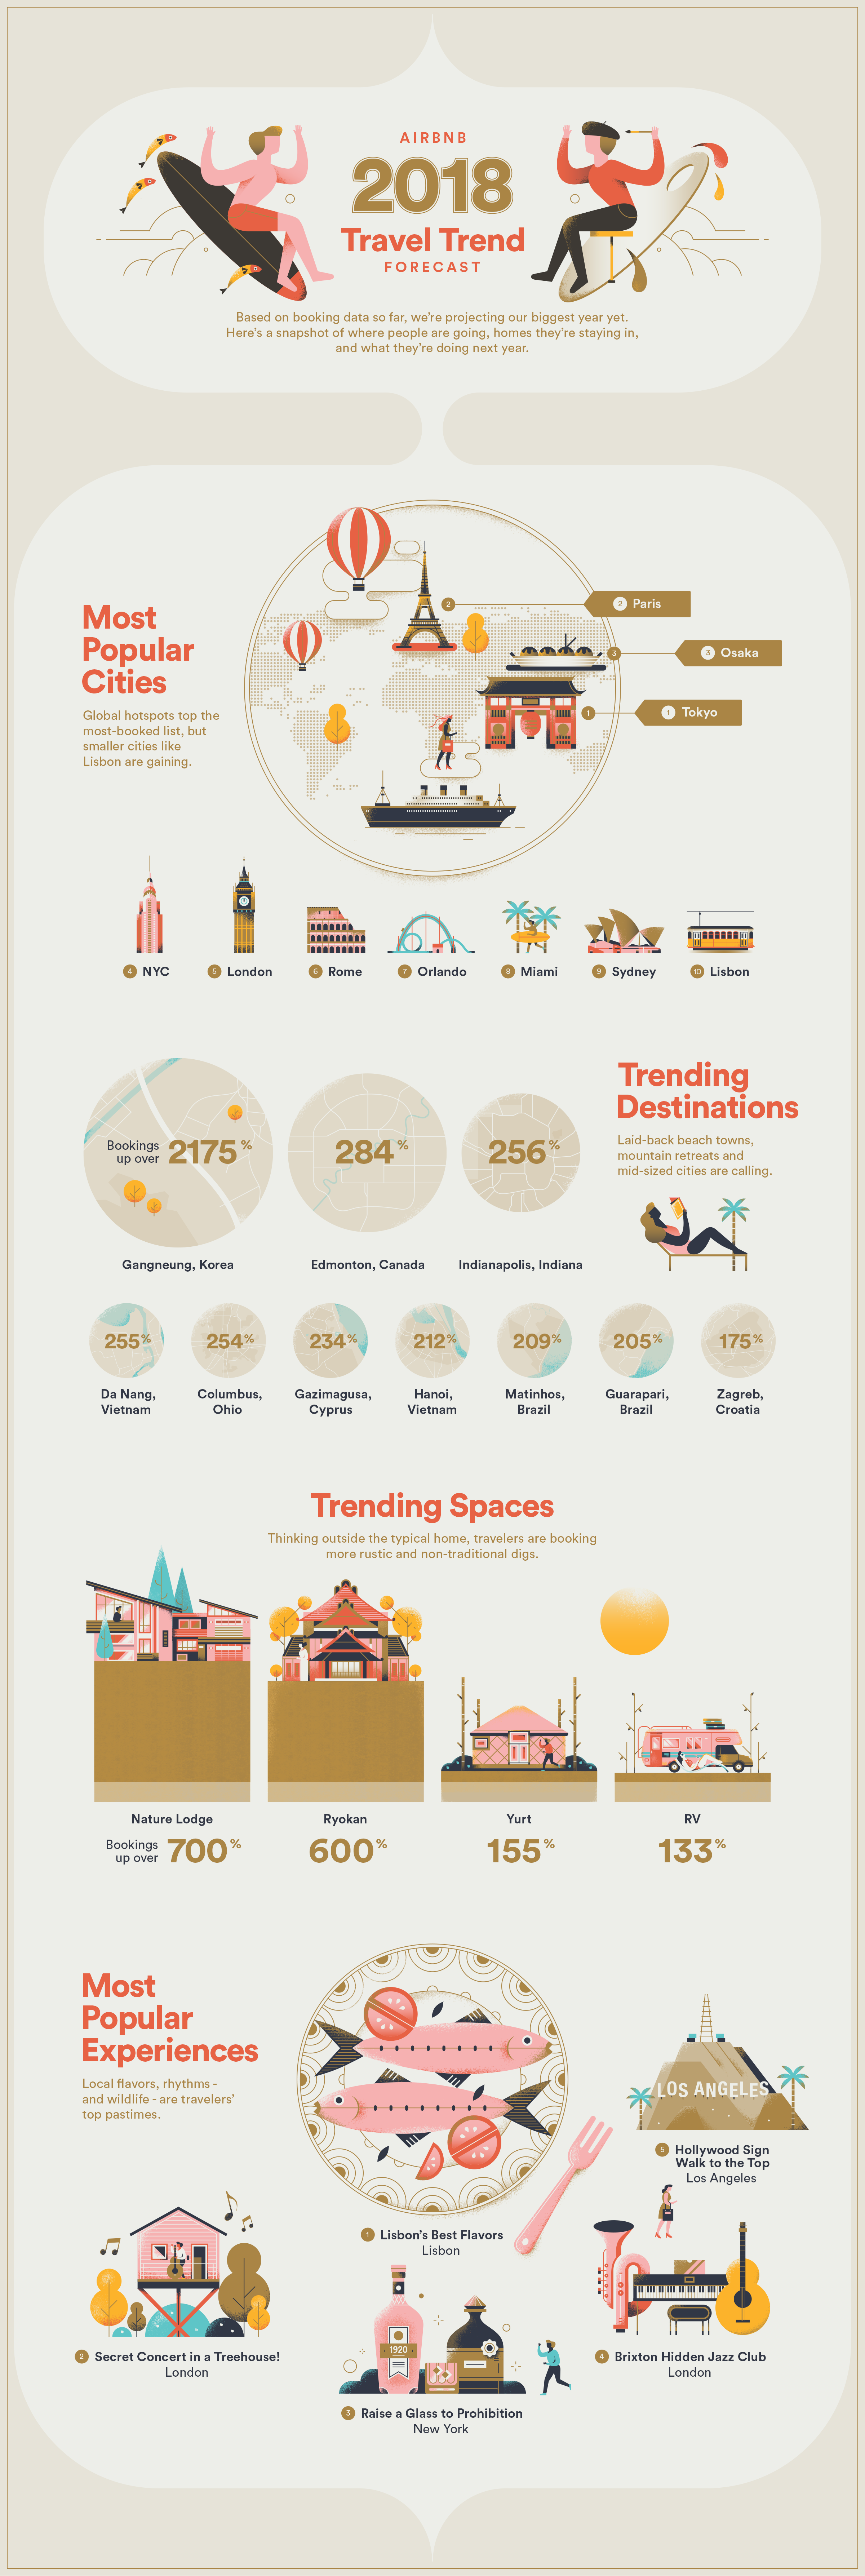 The U.S. Midwest, Ryokans and Brazilian beaches: Airbnb's 2018 travel trends